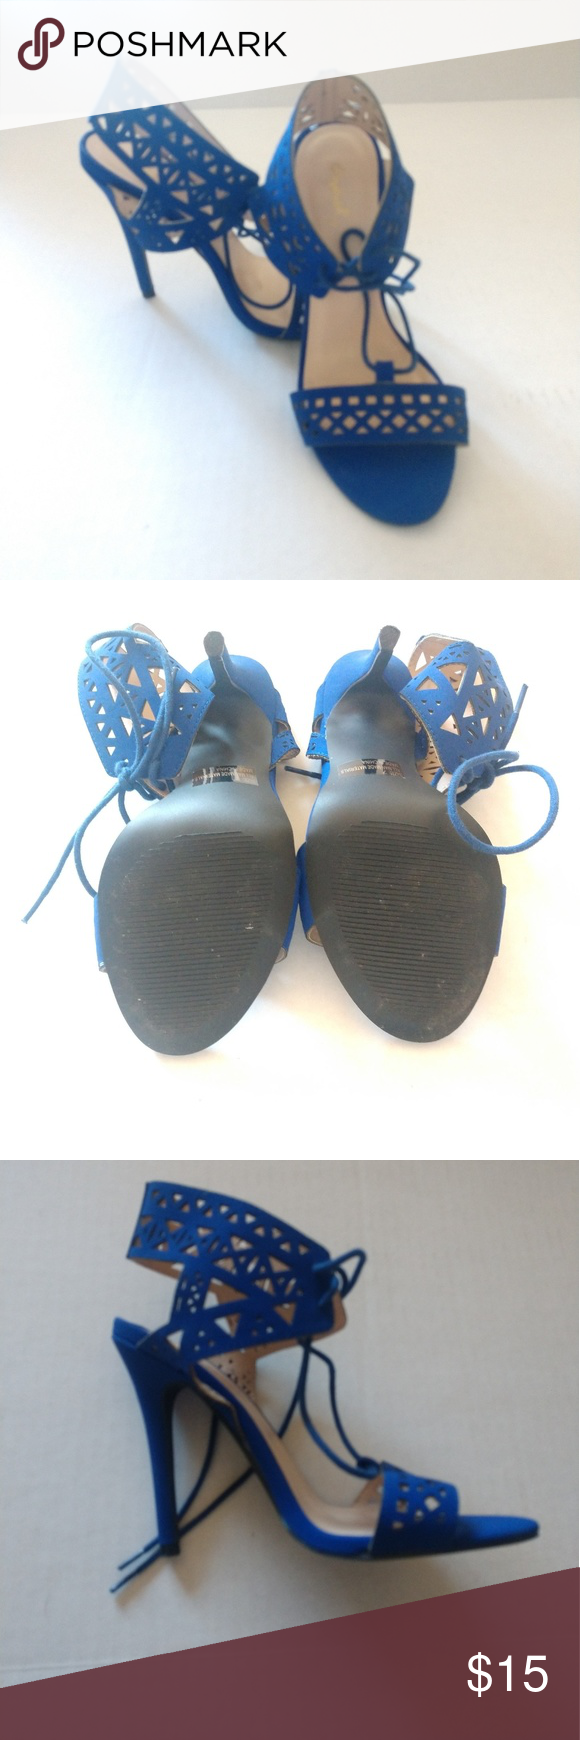 Cupid High Heal Sandals Blue Cupid High Heal Sandals that are size 6 they are in like new condition. Cupid Shoes Heels #myposhpicks